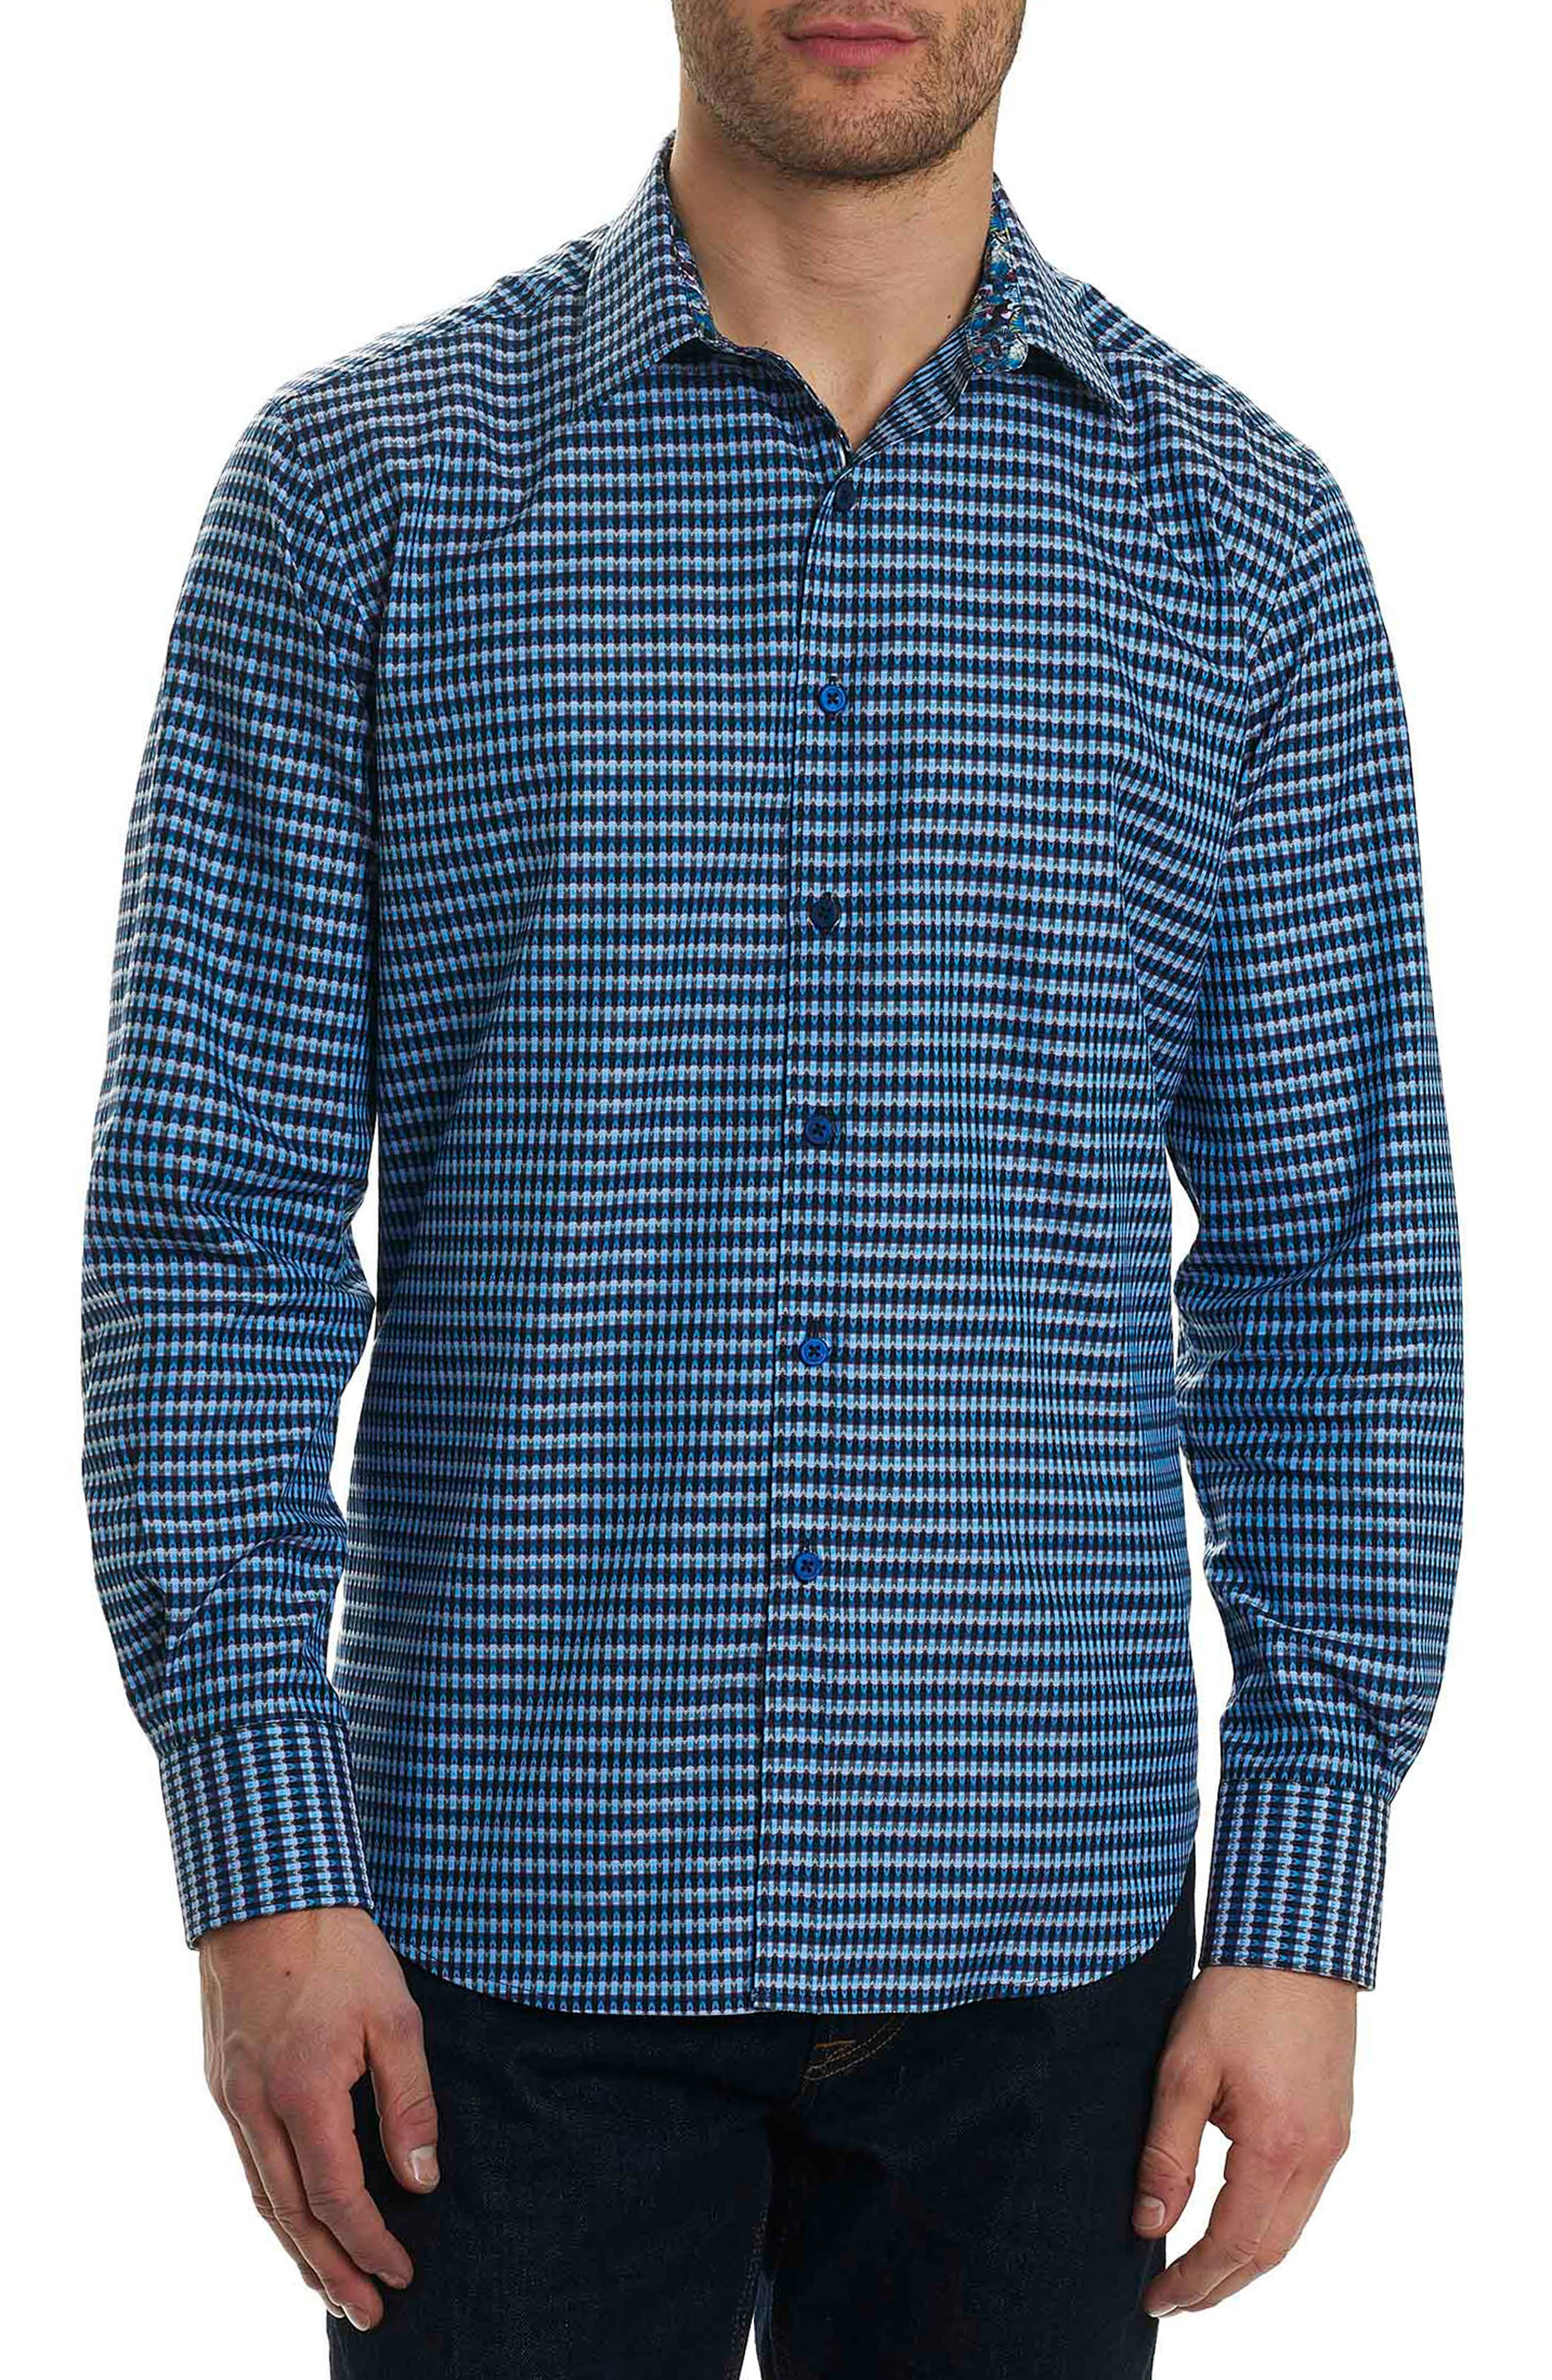 Alternate Image 1 Selected - Robert Graham Hill Punch Classic Fit Print Sport Shirt